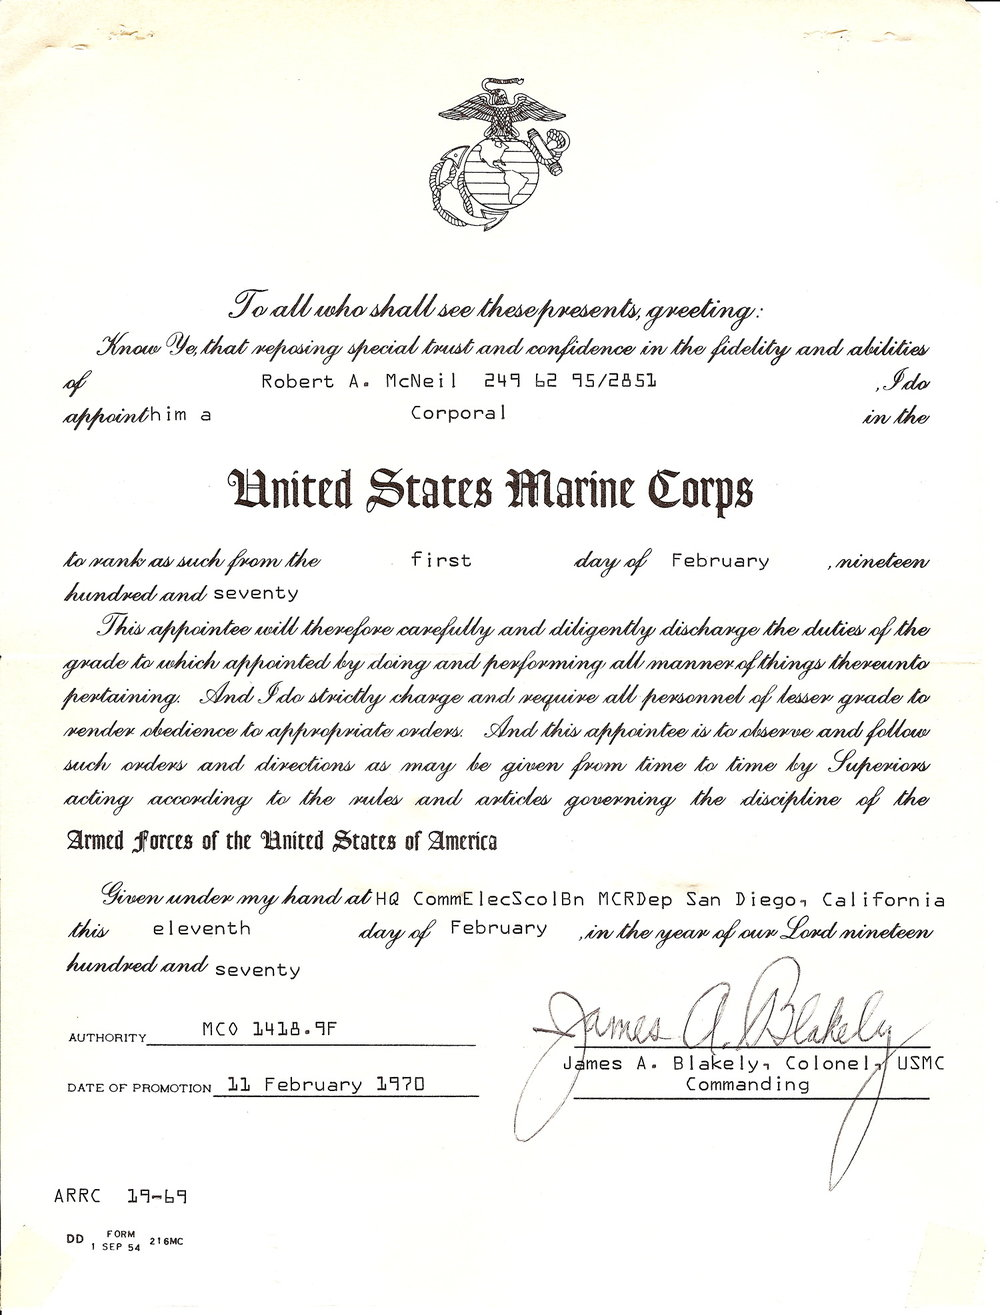 Bob McNeil - February 11, 1970 - Age 21 - U.S. Marine Corps - Promotion to Corporal - San Diego, California